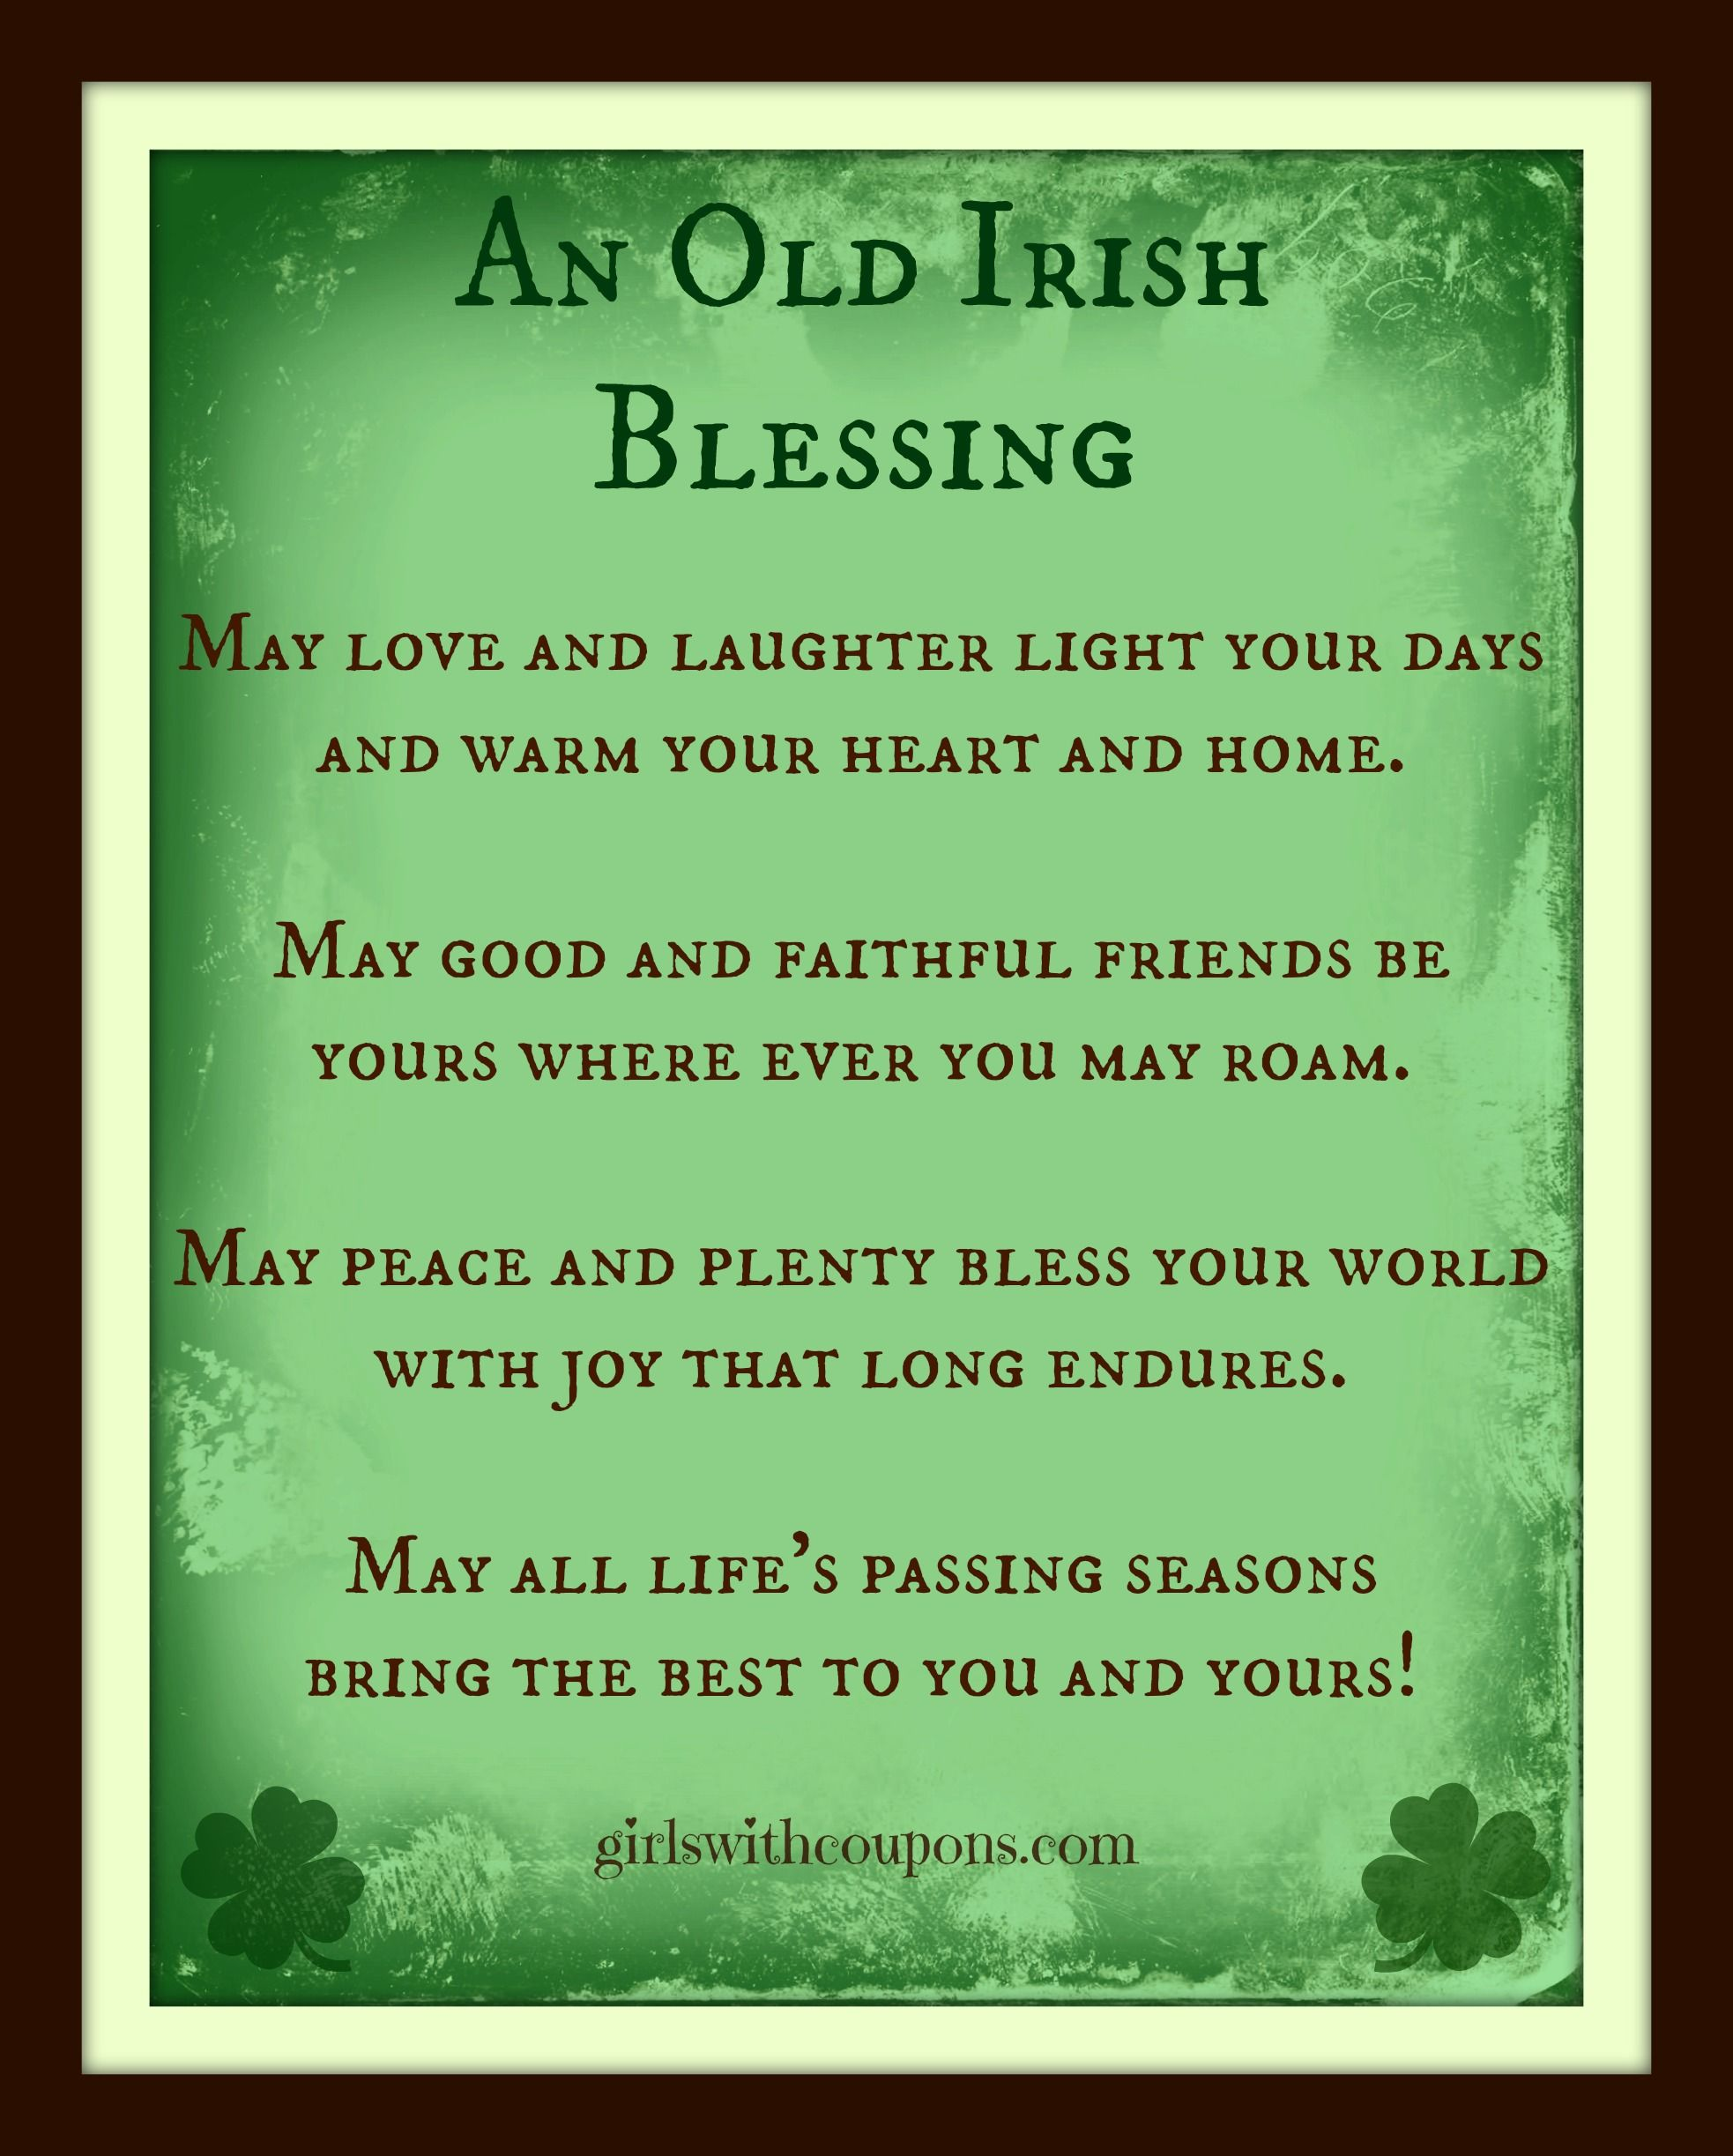 Irish Wedding Quotes: An Old Irish Blessing